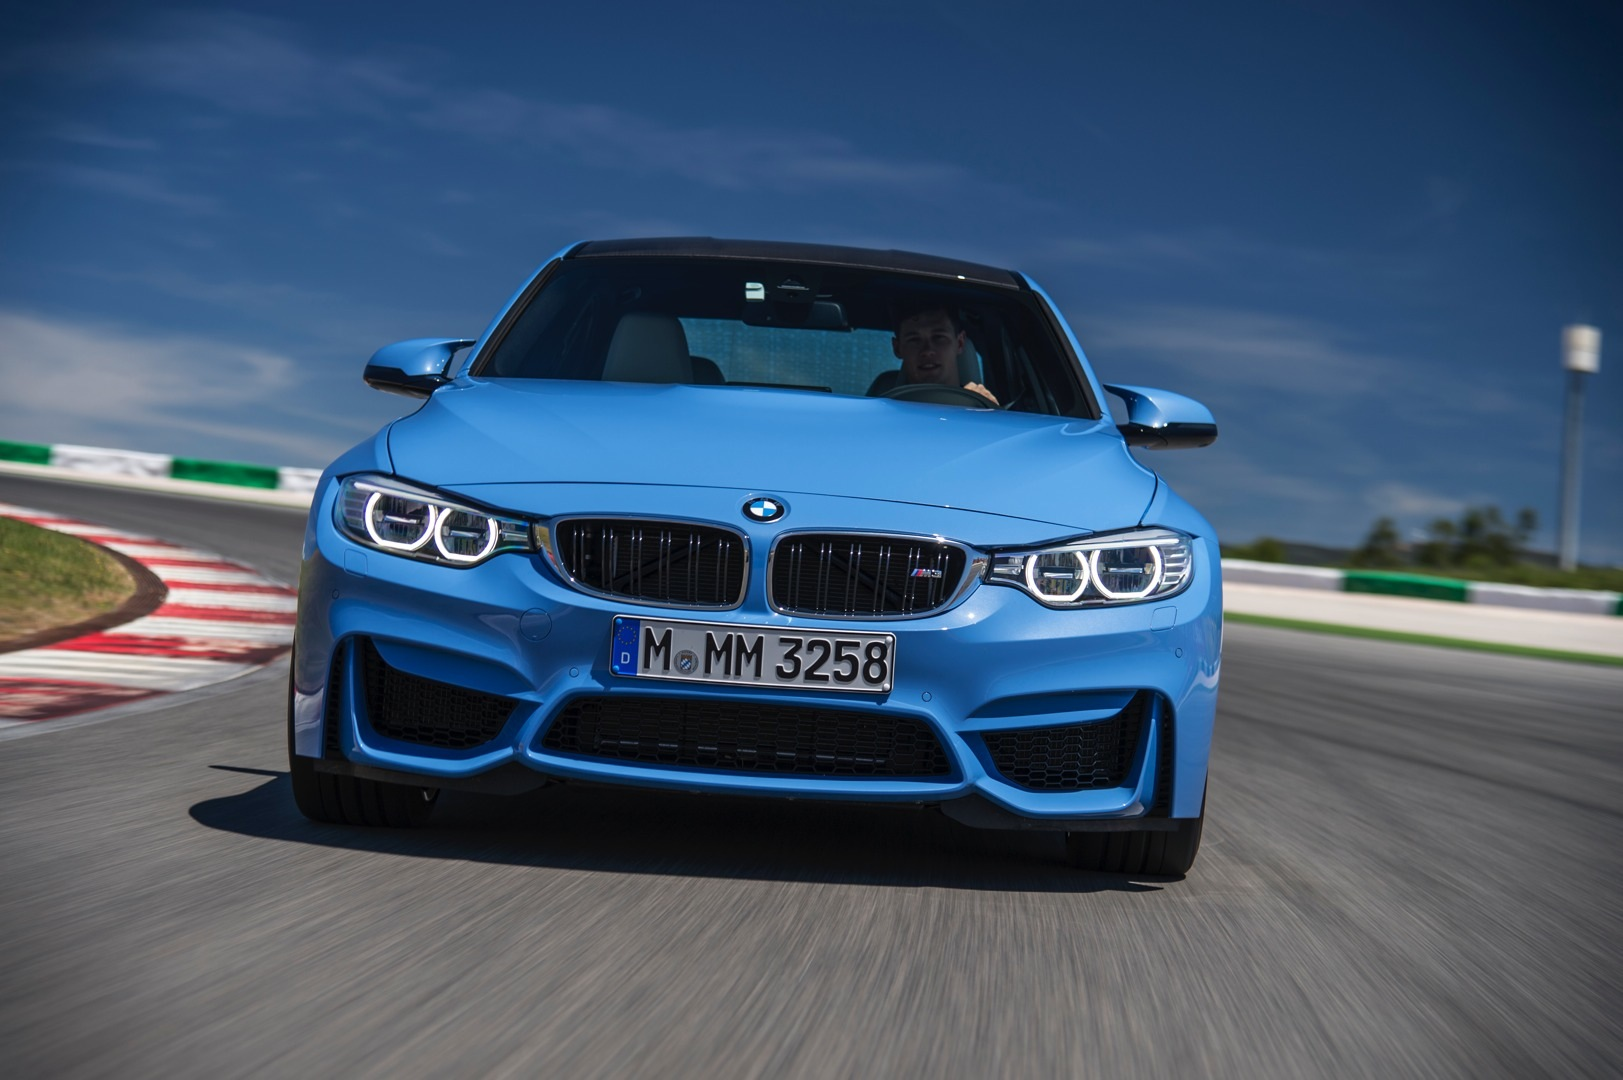 2015 BMW M3 and M4 Wallpapers   photo gallery 1623x1080